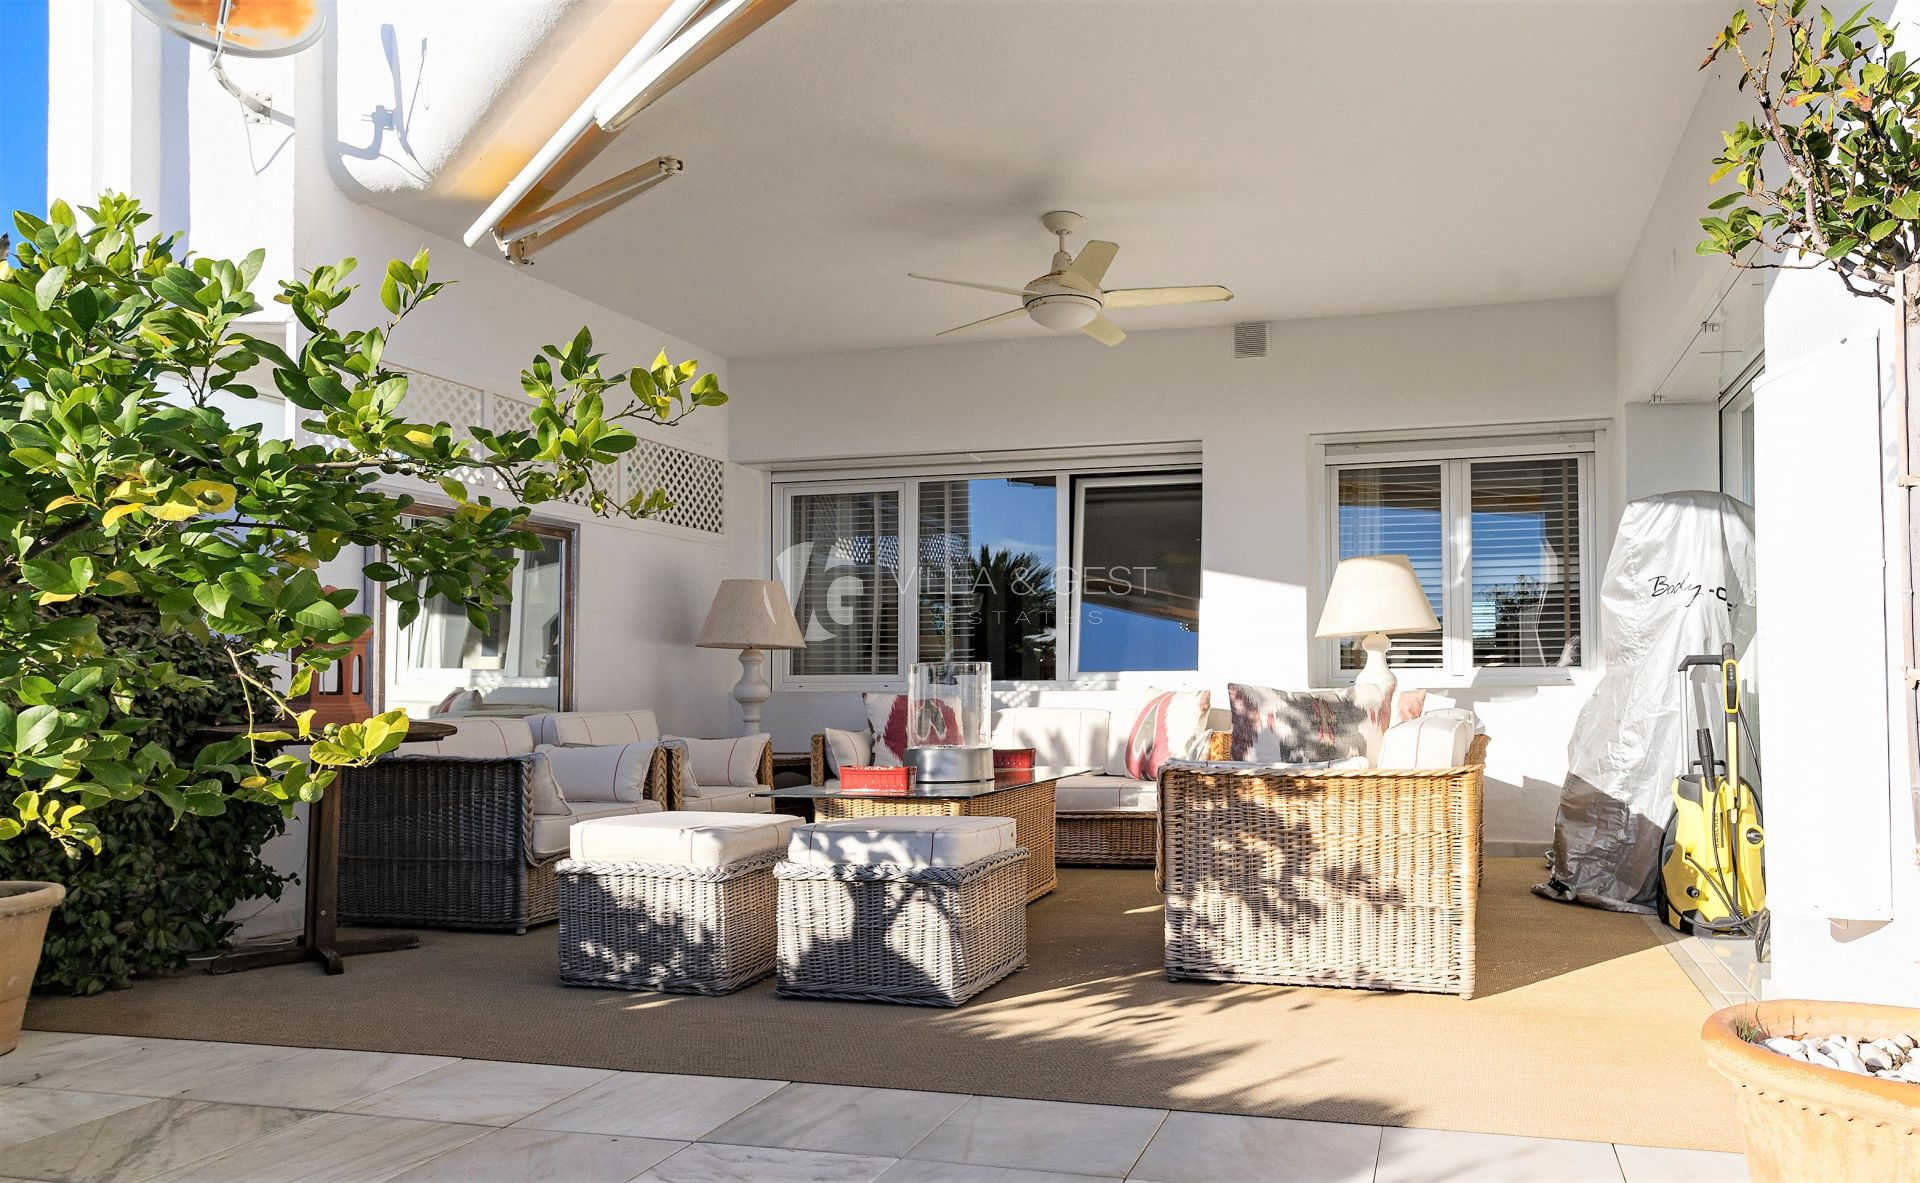 Apartment for sale in San Pedro de Alcantara, Costa del Sol